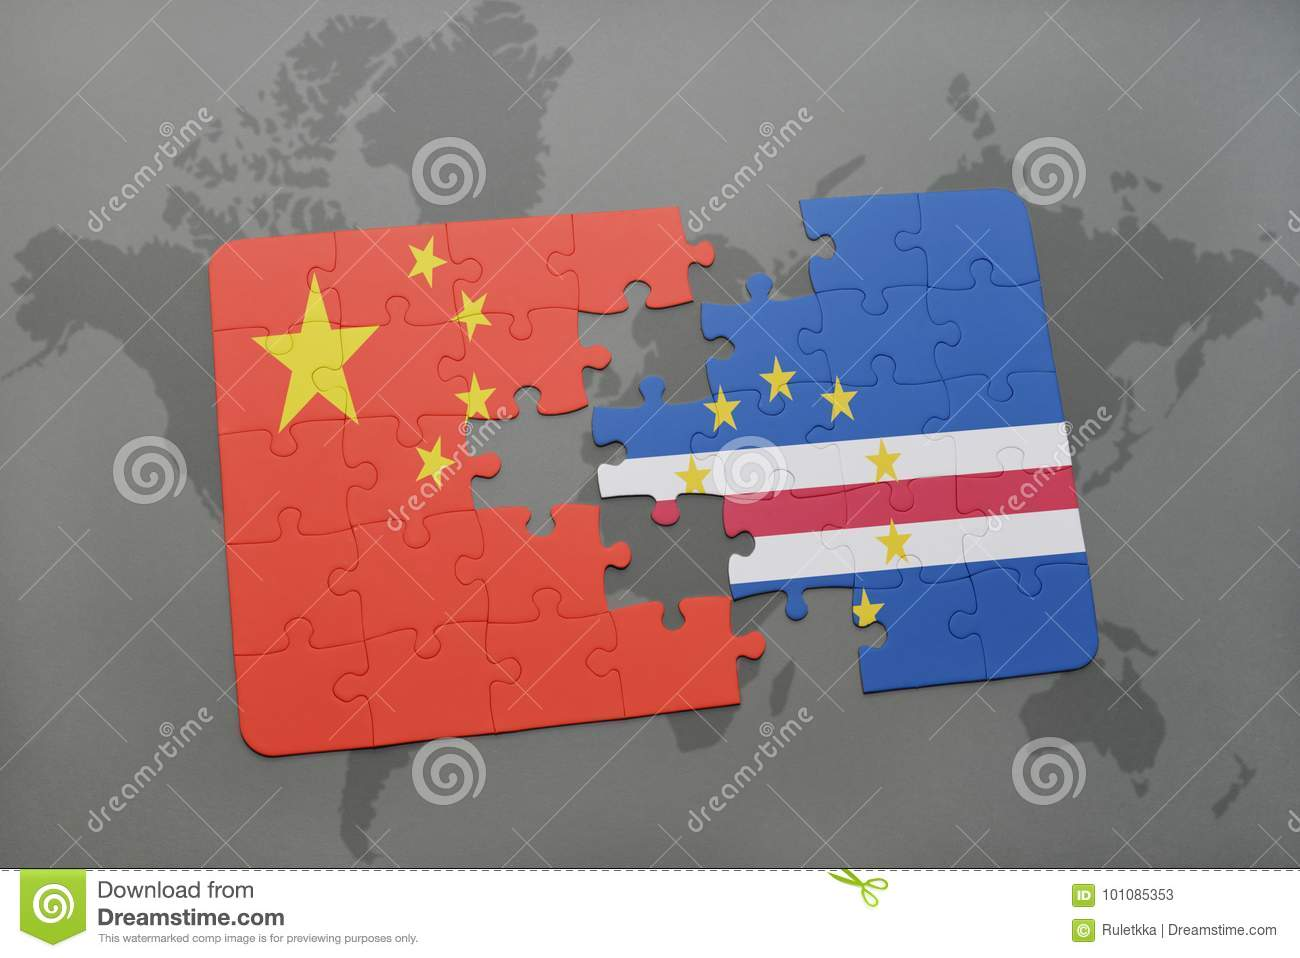 Puzzle With The National Flag Of China And Cape Verde On A World